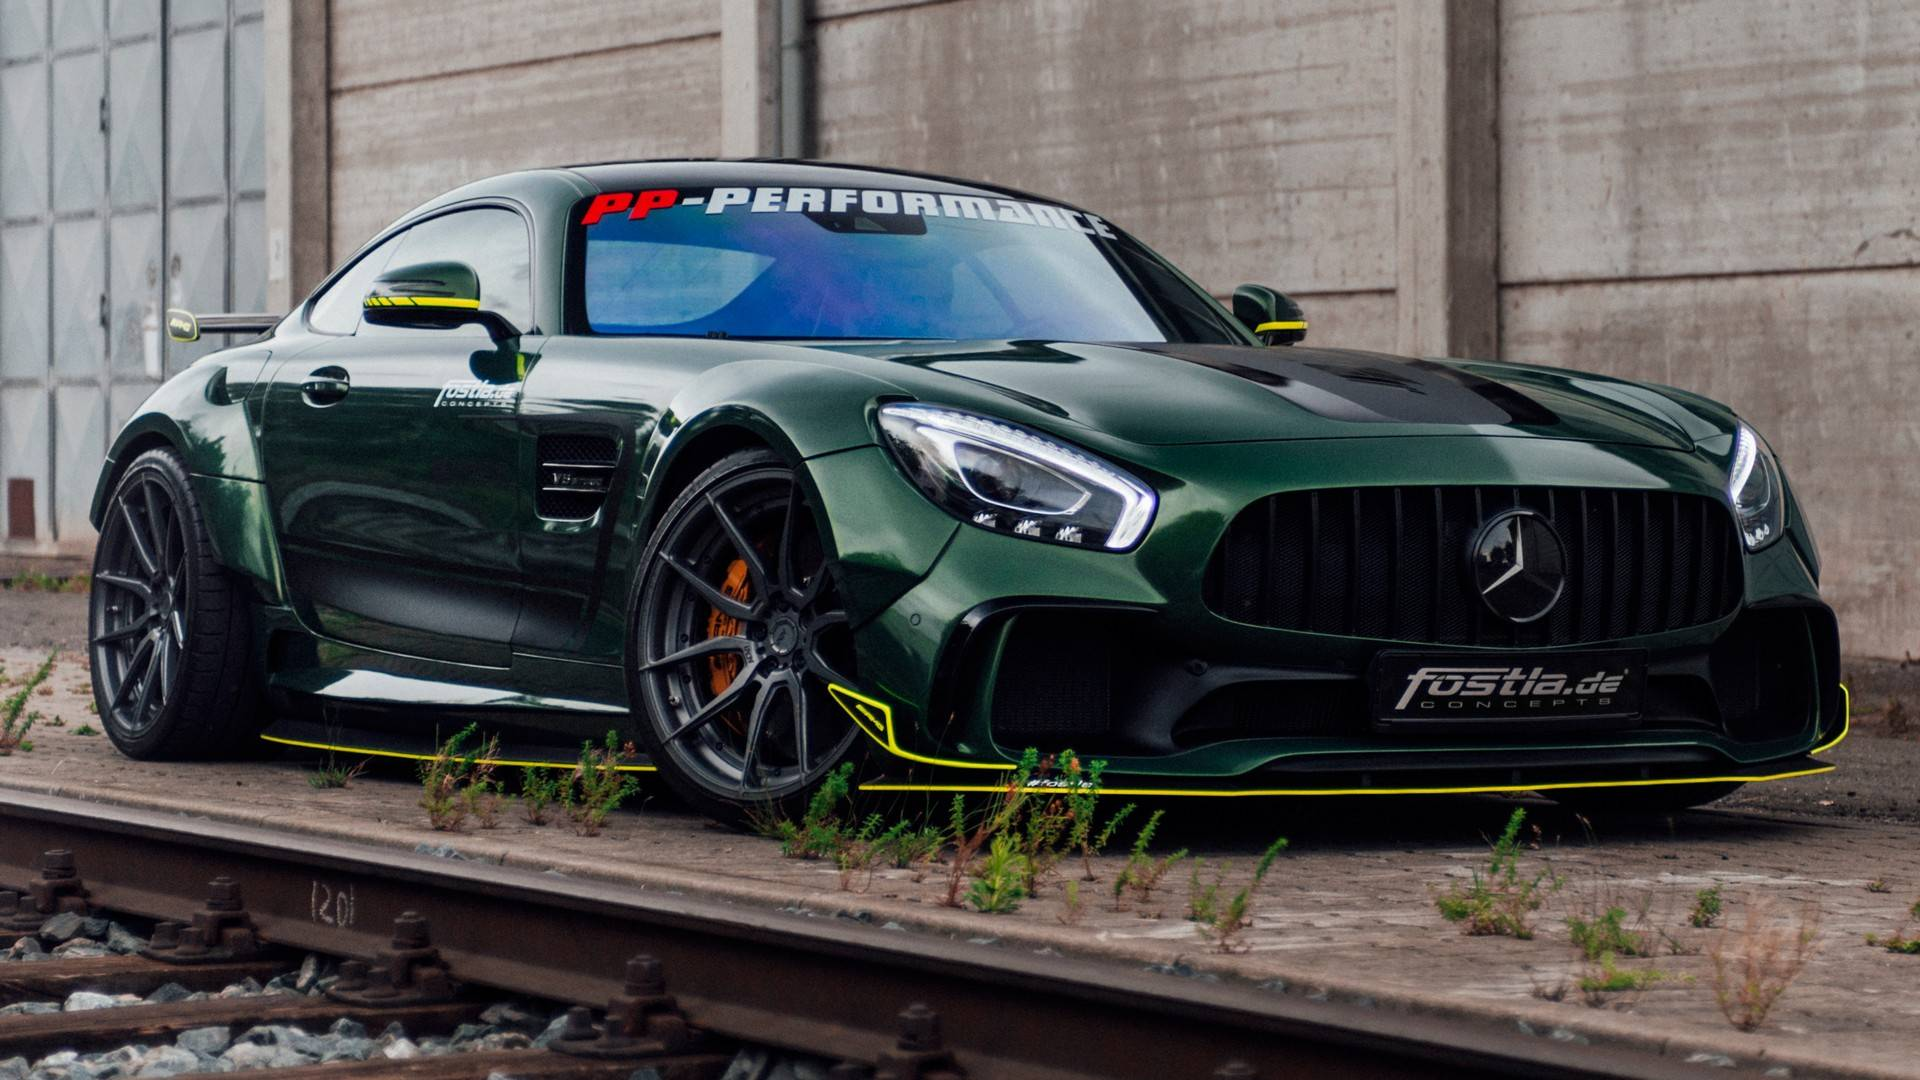 Mercedes-AMG GT Looks Mean And Green With 650-Horsepower Upgrade